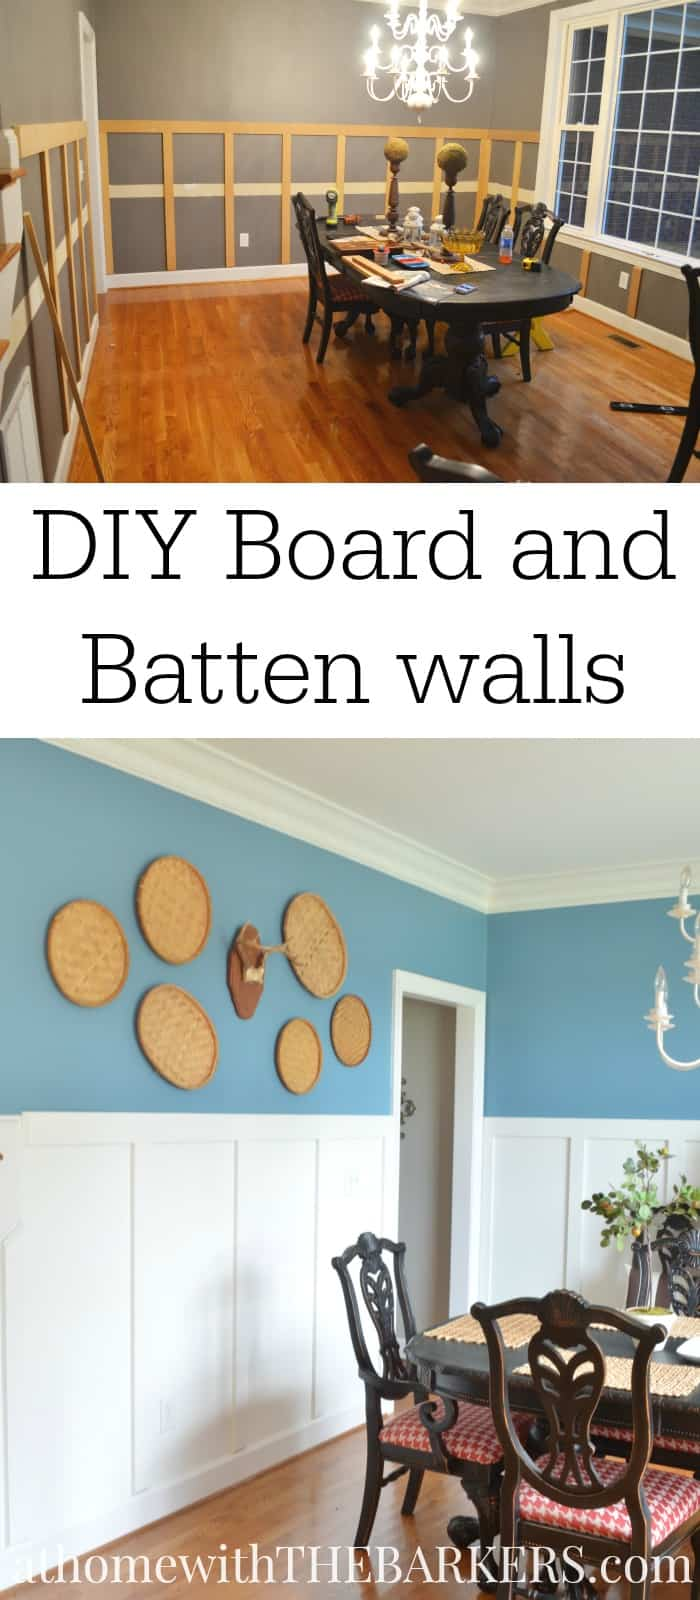 My Top 5 Board And Batten Wall Tips